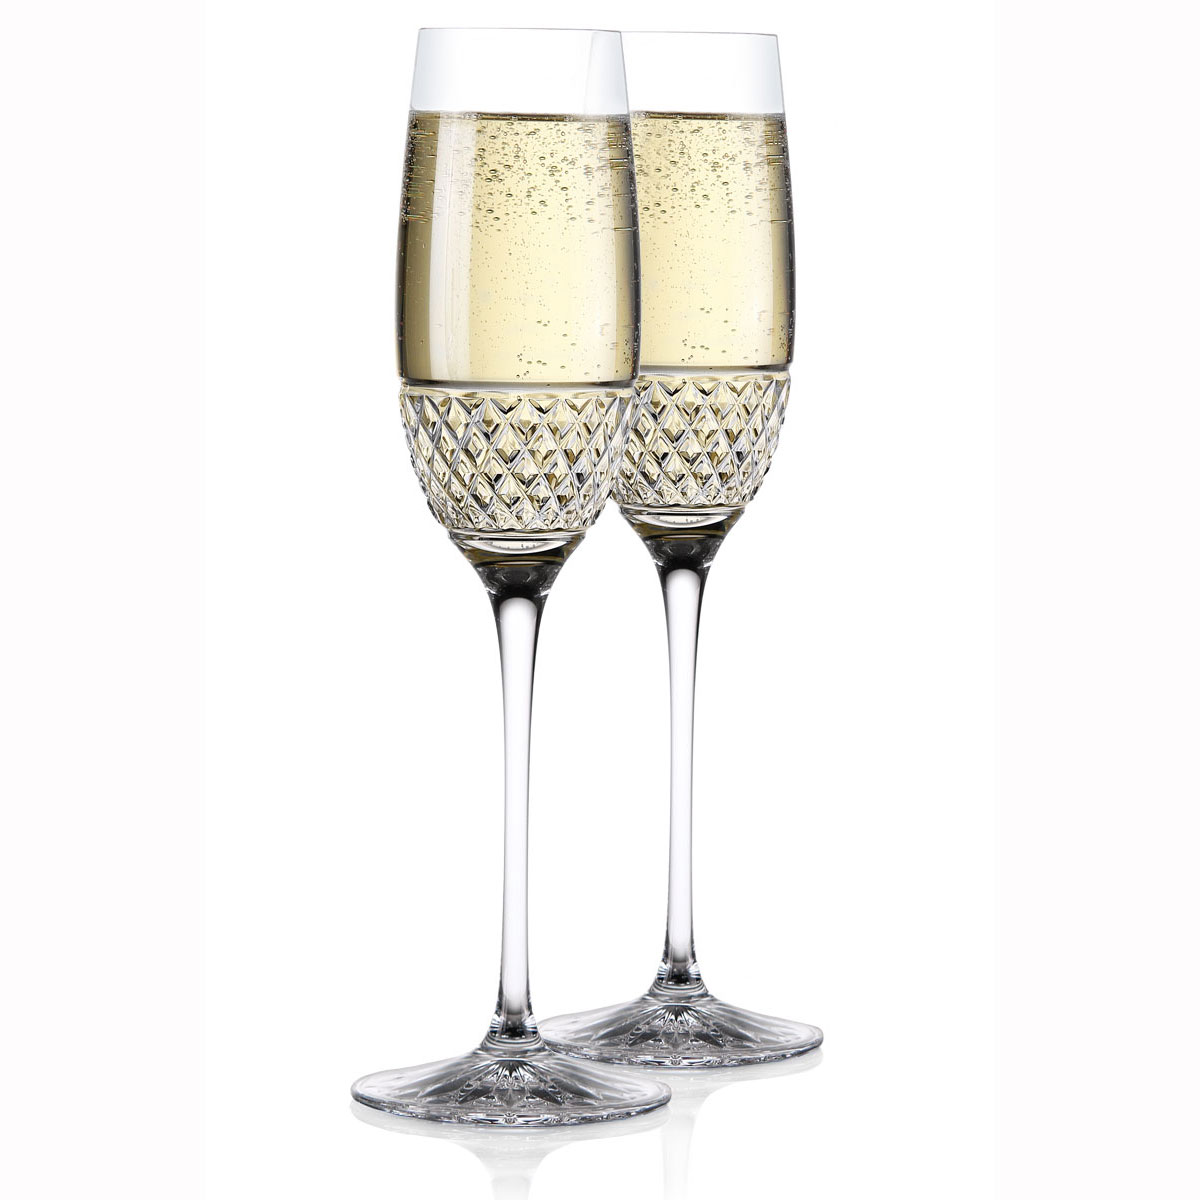 Cashs Ireland, Cooper Celebration Toasting Flutes, Pair